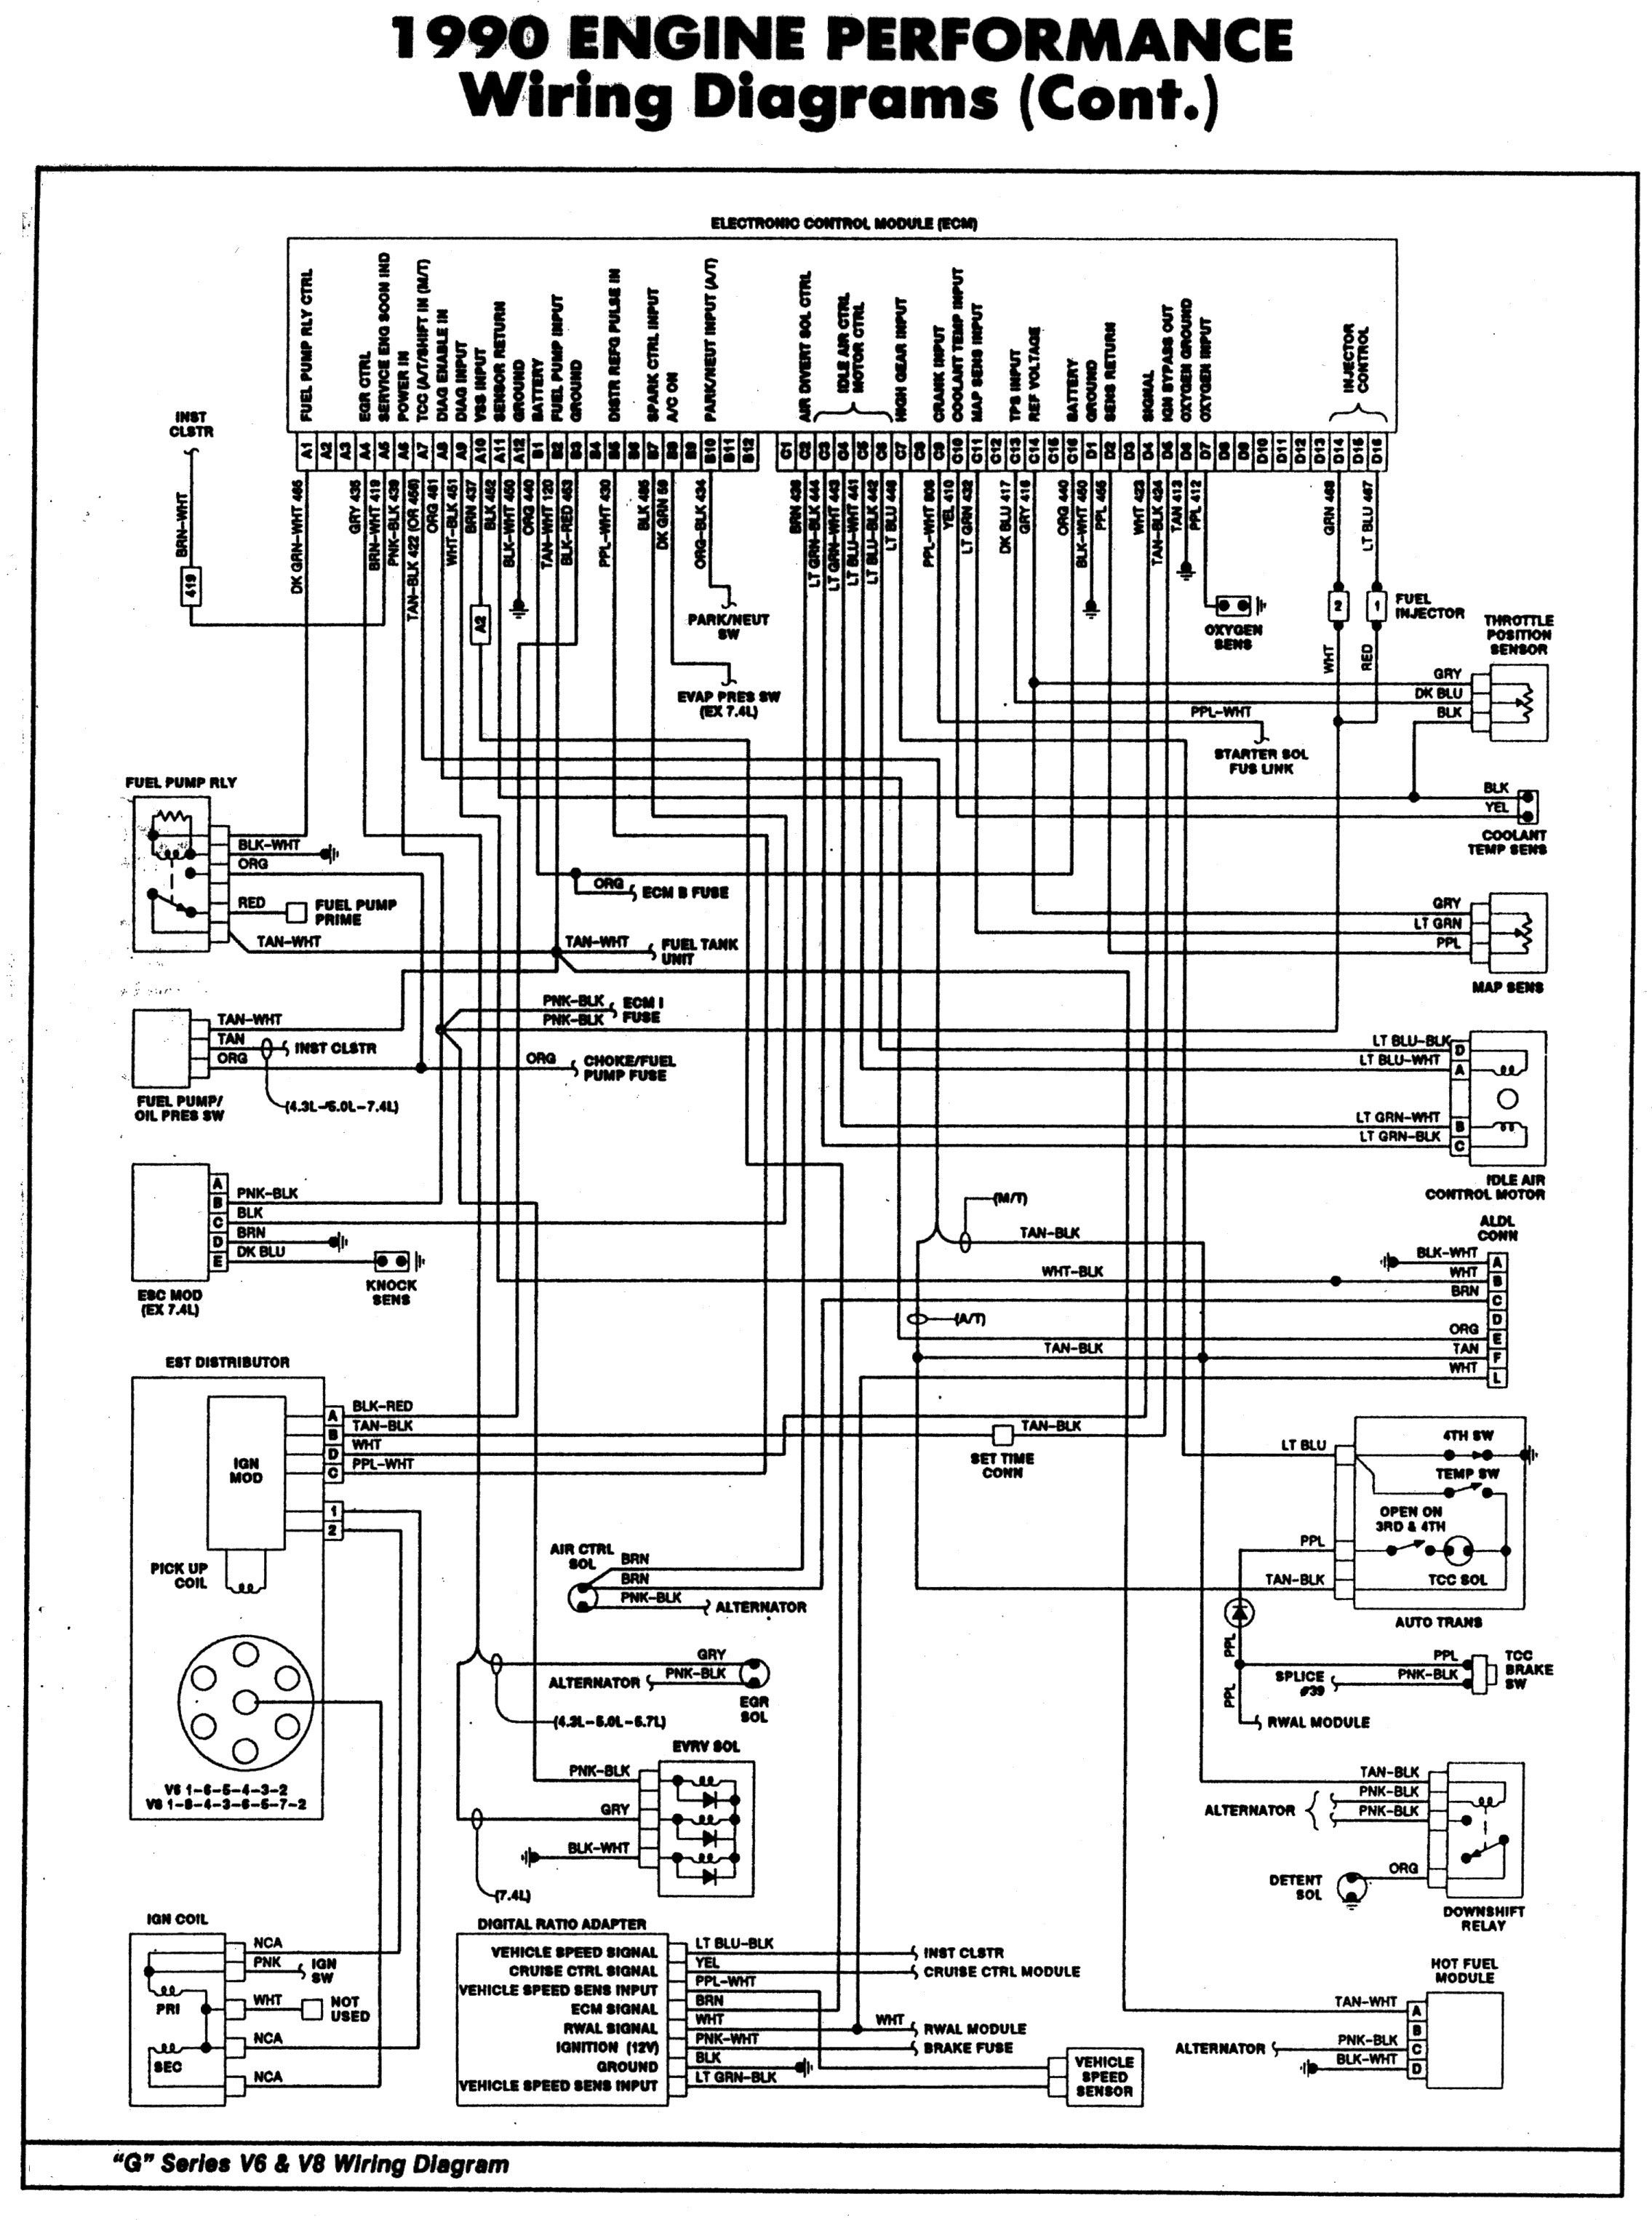 [DIAGRAM_38ZD]  1994 Chevy Truck Wiring Diagram Free Inspirational 2000 Chevrolet | Electrical  wiring diagram, Chevy trucks, Chevy pickups | 2000 Chevy 1500 Pickup Ecm Wiring Diagram |  | Pinterest